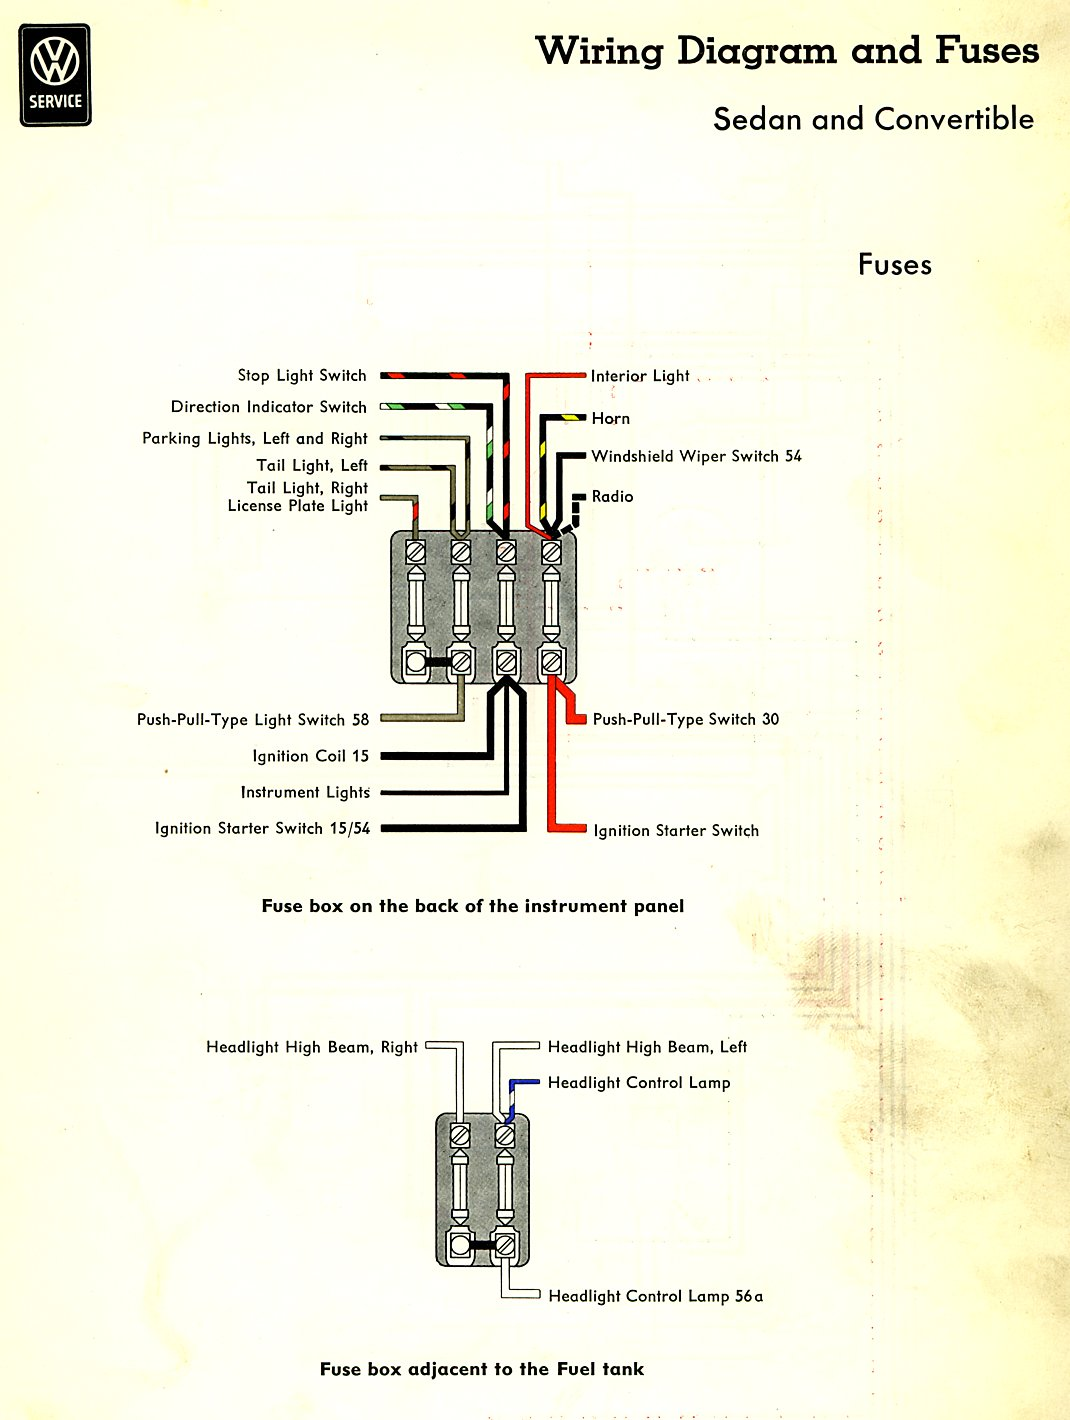 bug_58_fuses thesamba com type 1 wiring diagrams 1984 fj40 fuse box diagram at bakdesigns.co